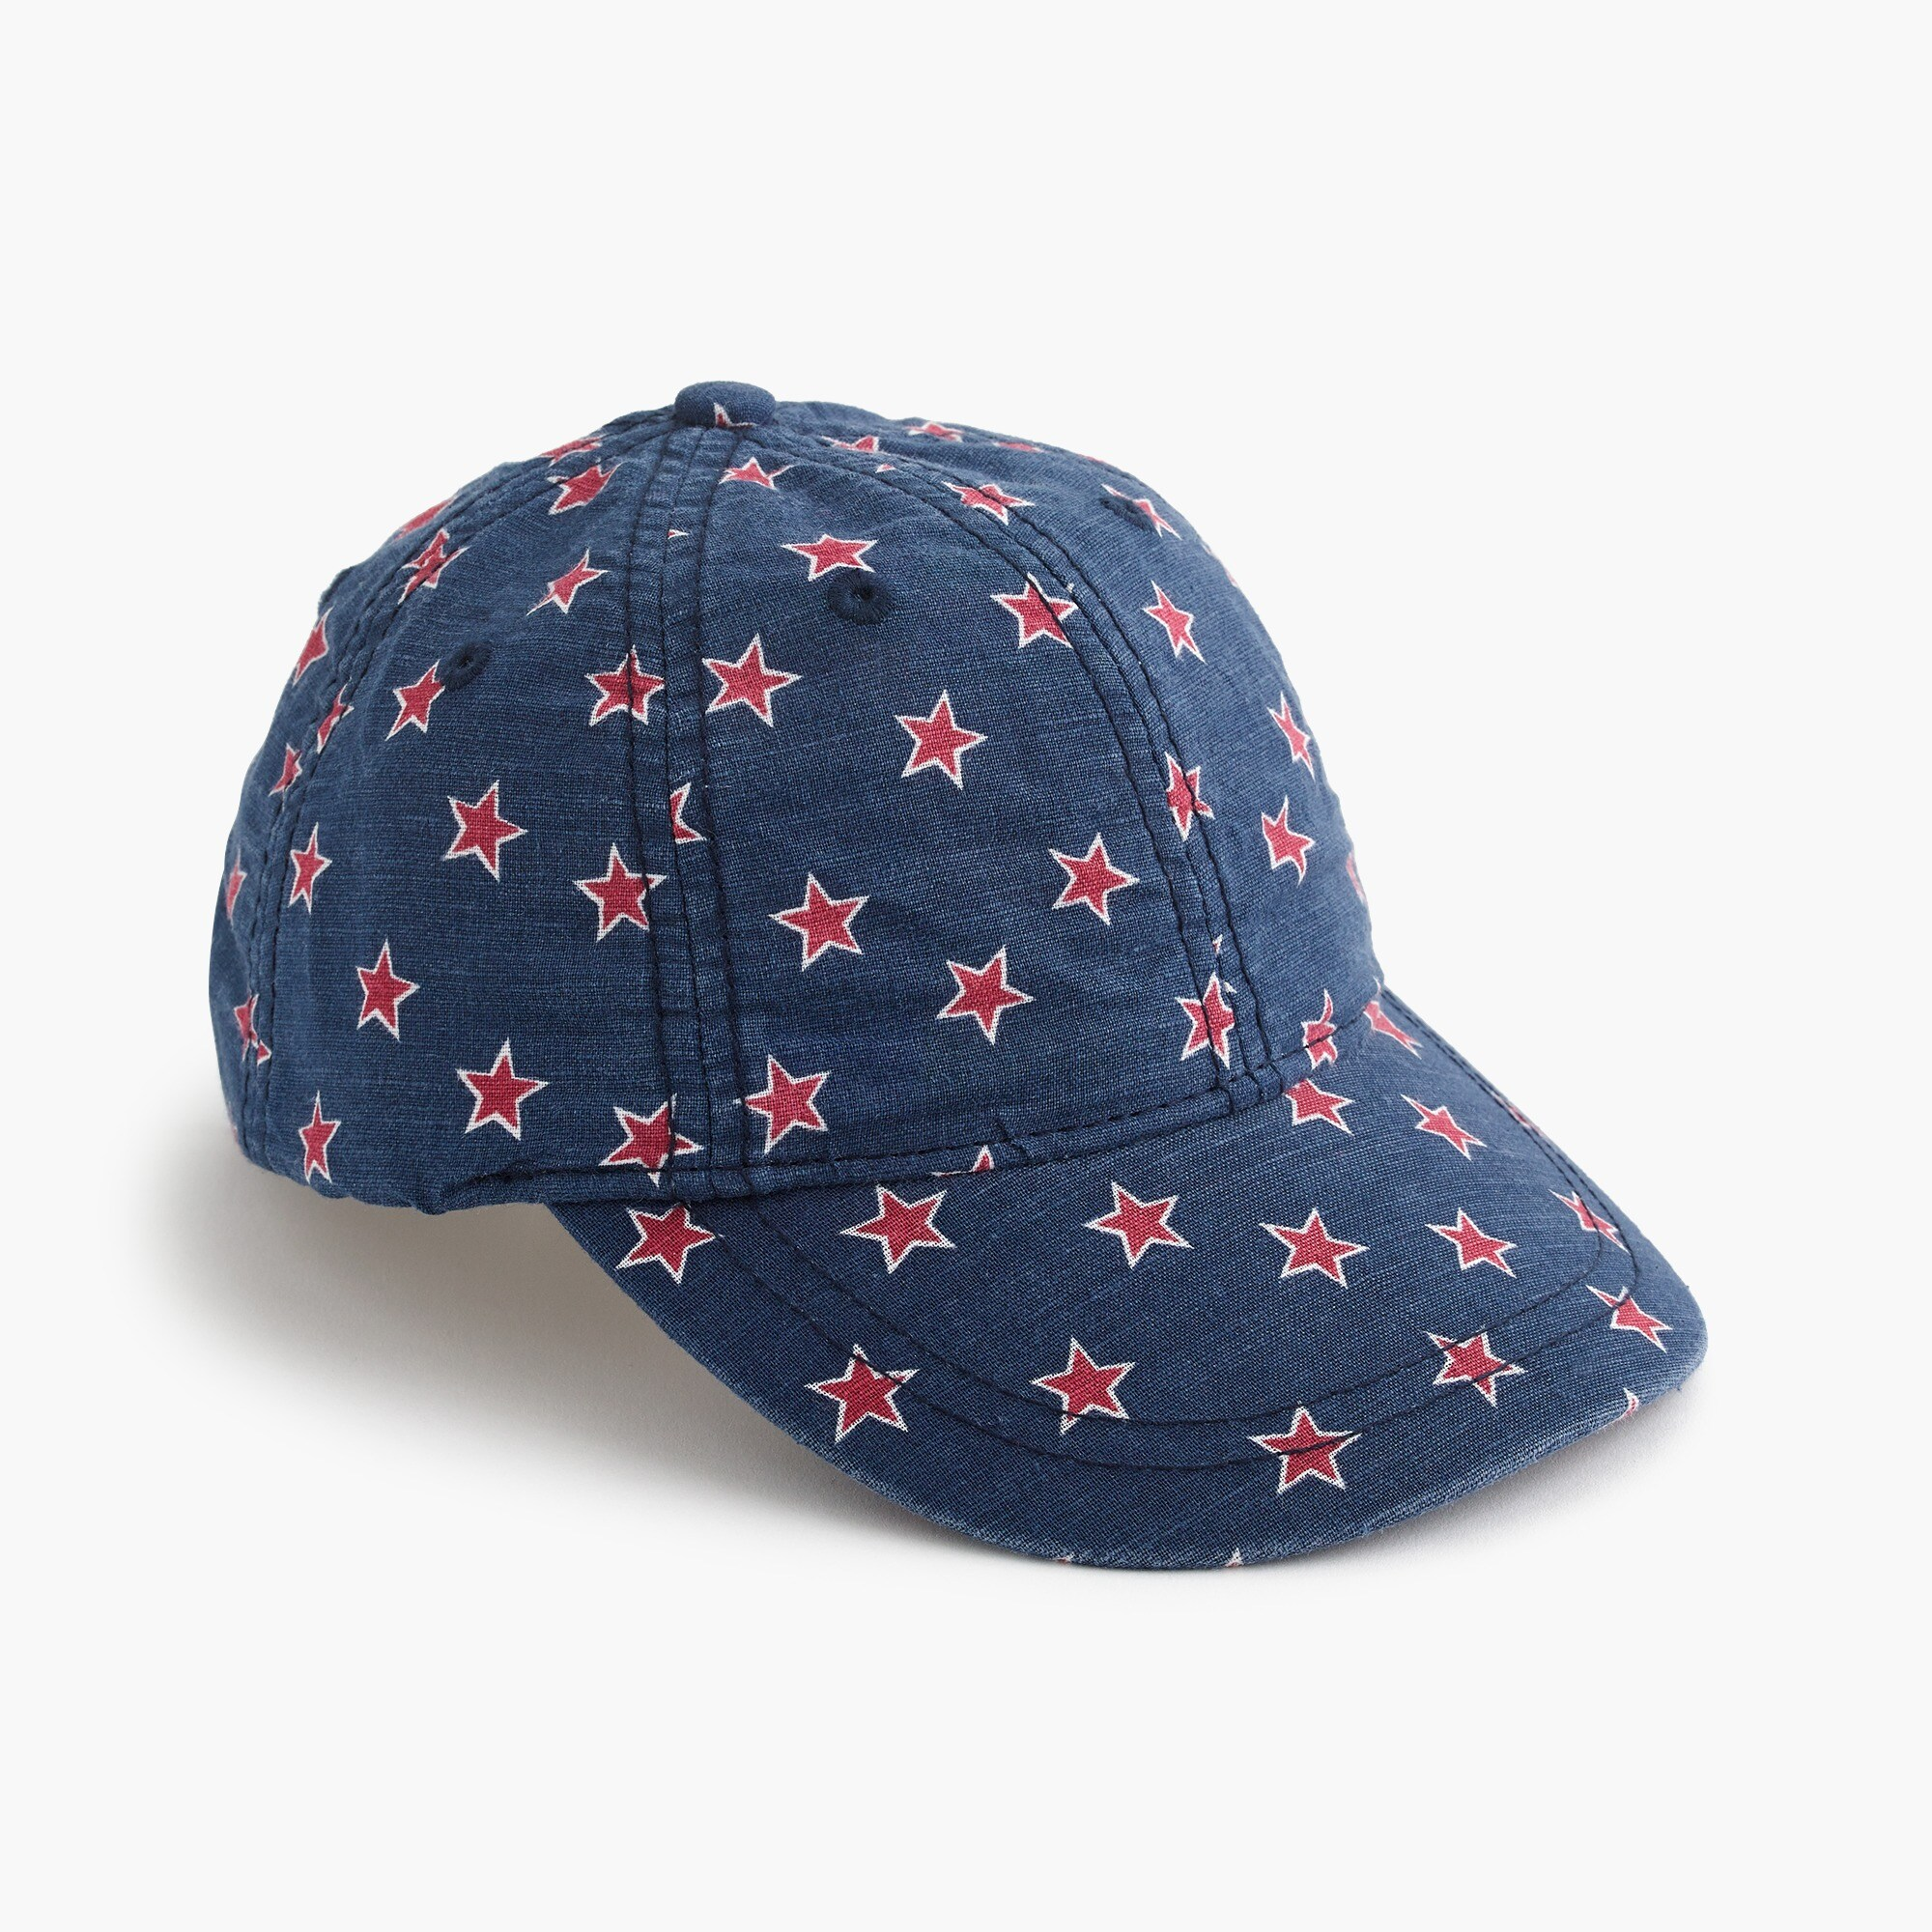 Kids' star-printed baseball cap boy new arrivals c